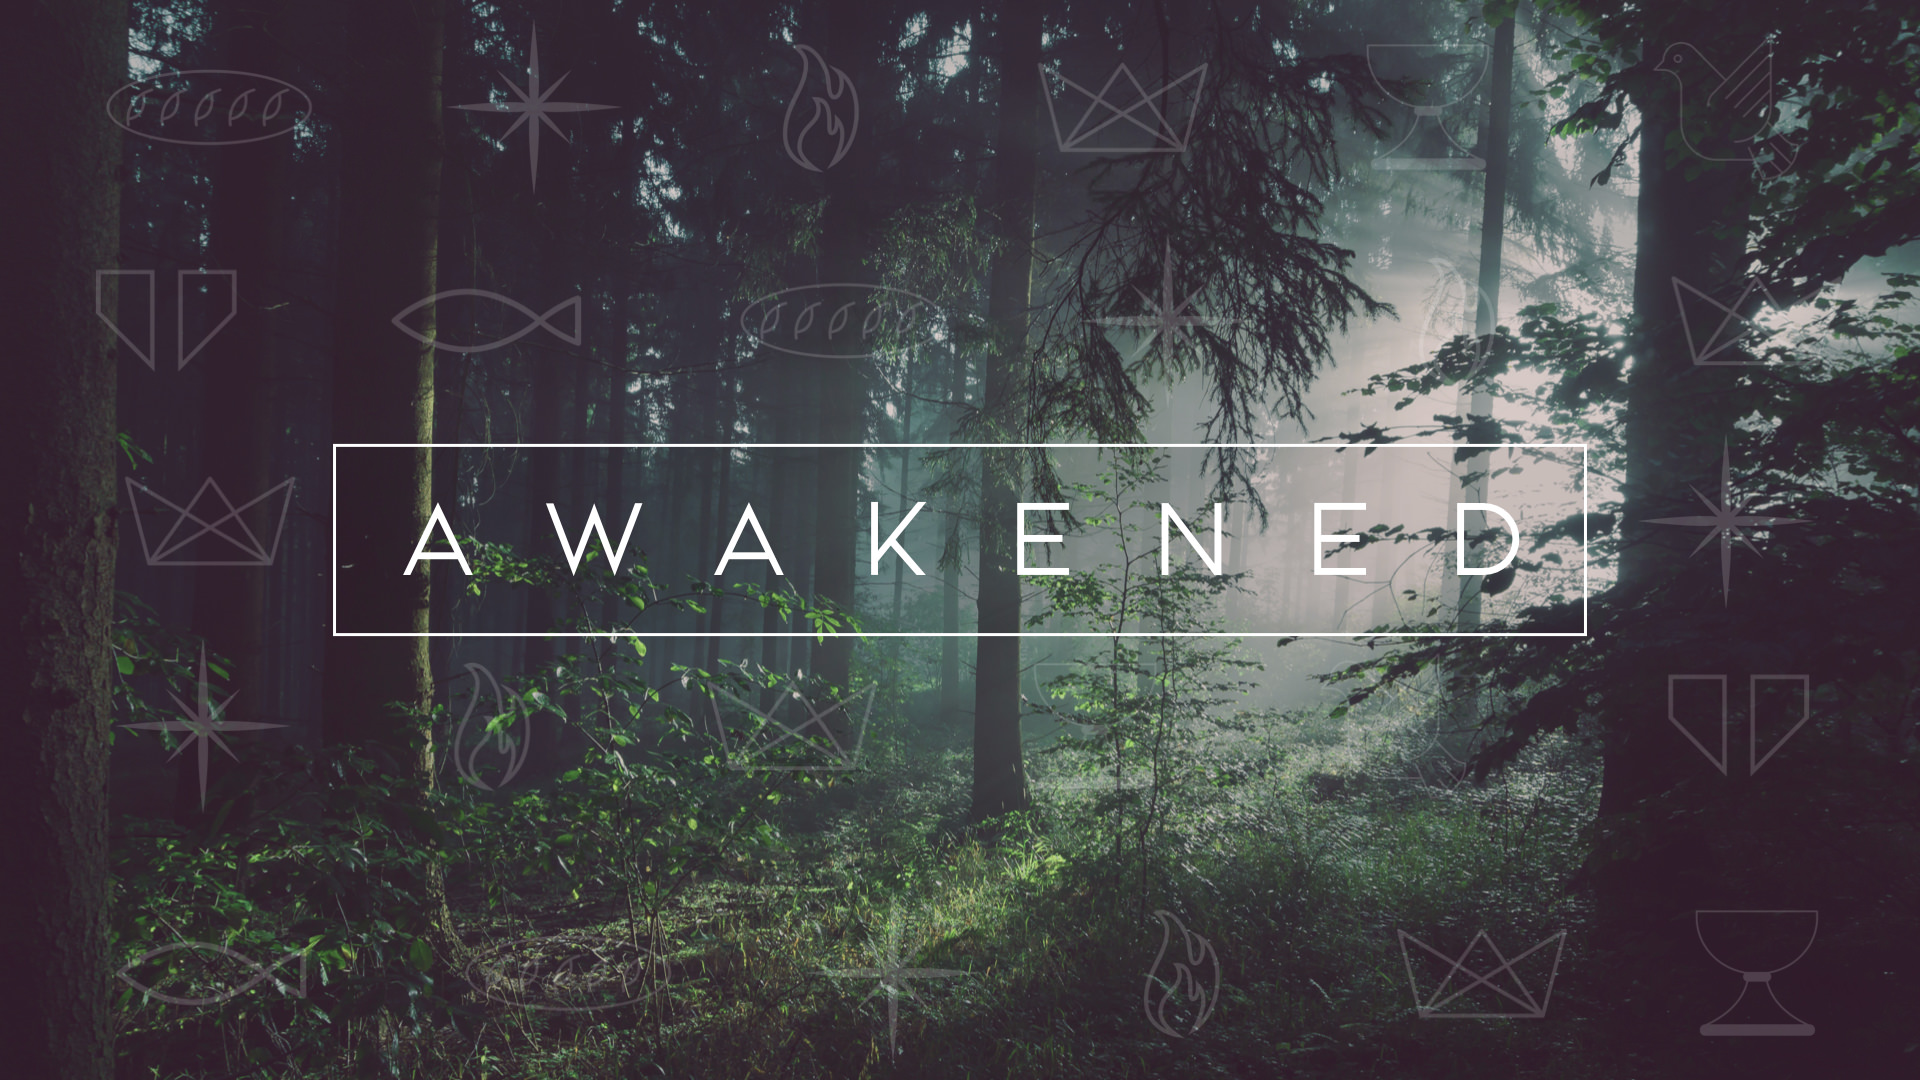 Become awakened to God's presence in your every day life.